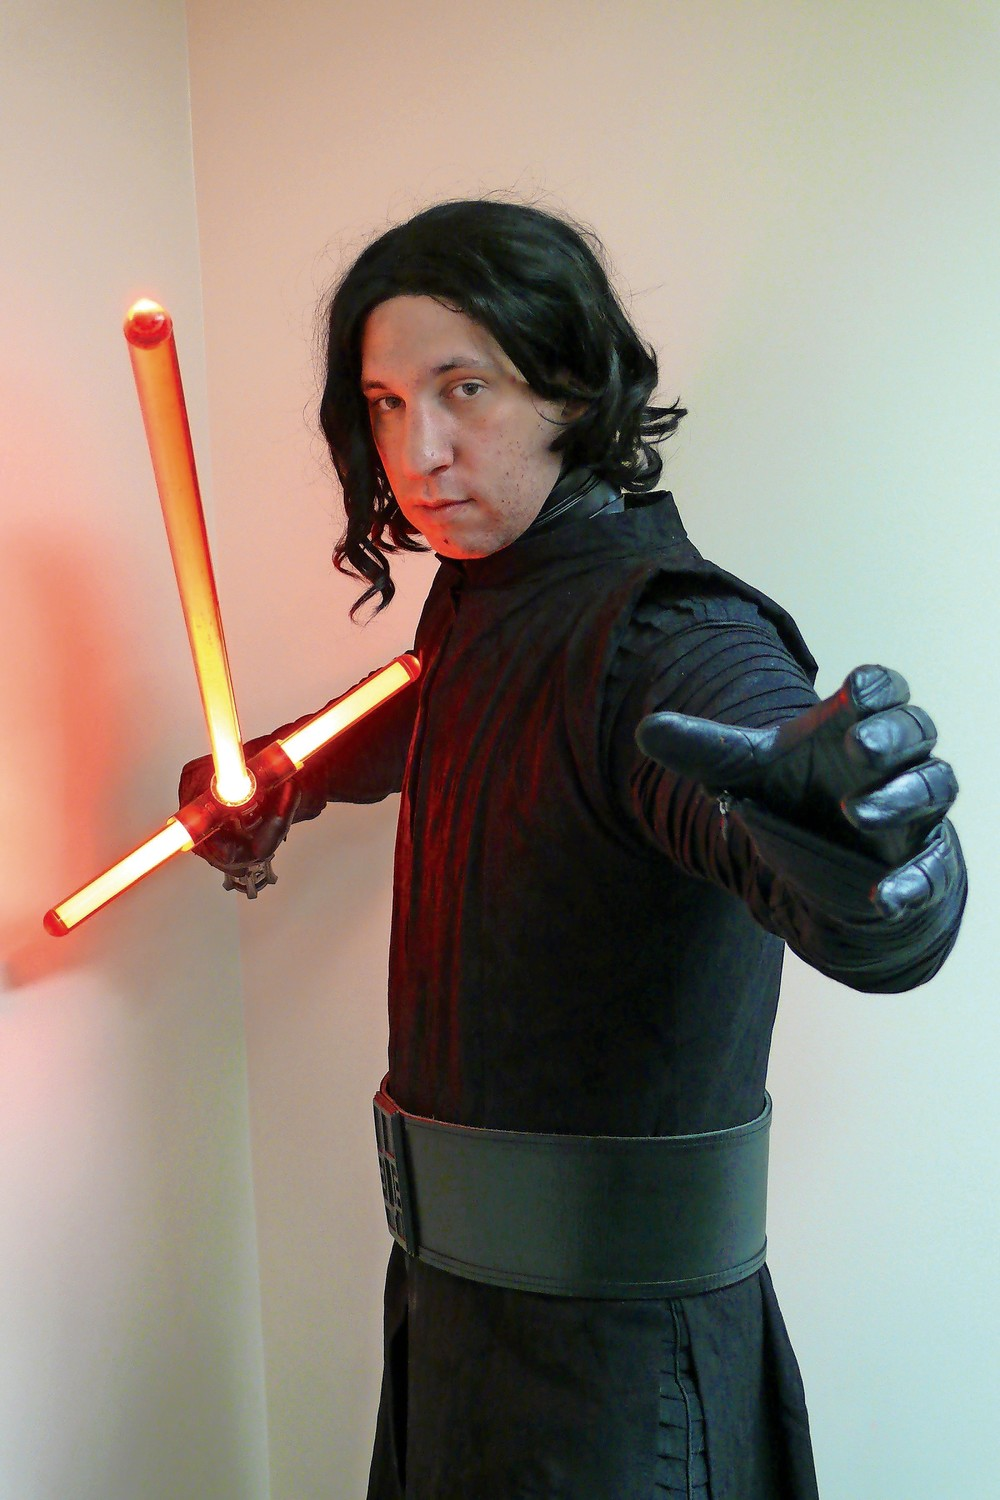 Longtime East Meadow patron Andrew Popeil wore his best Kylo Ren costume, and displayed his saber skills.